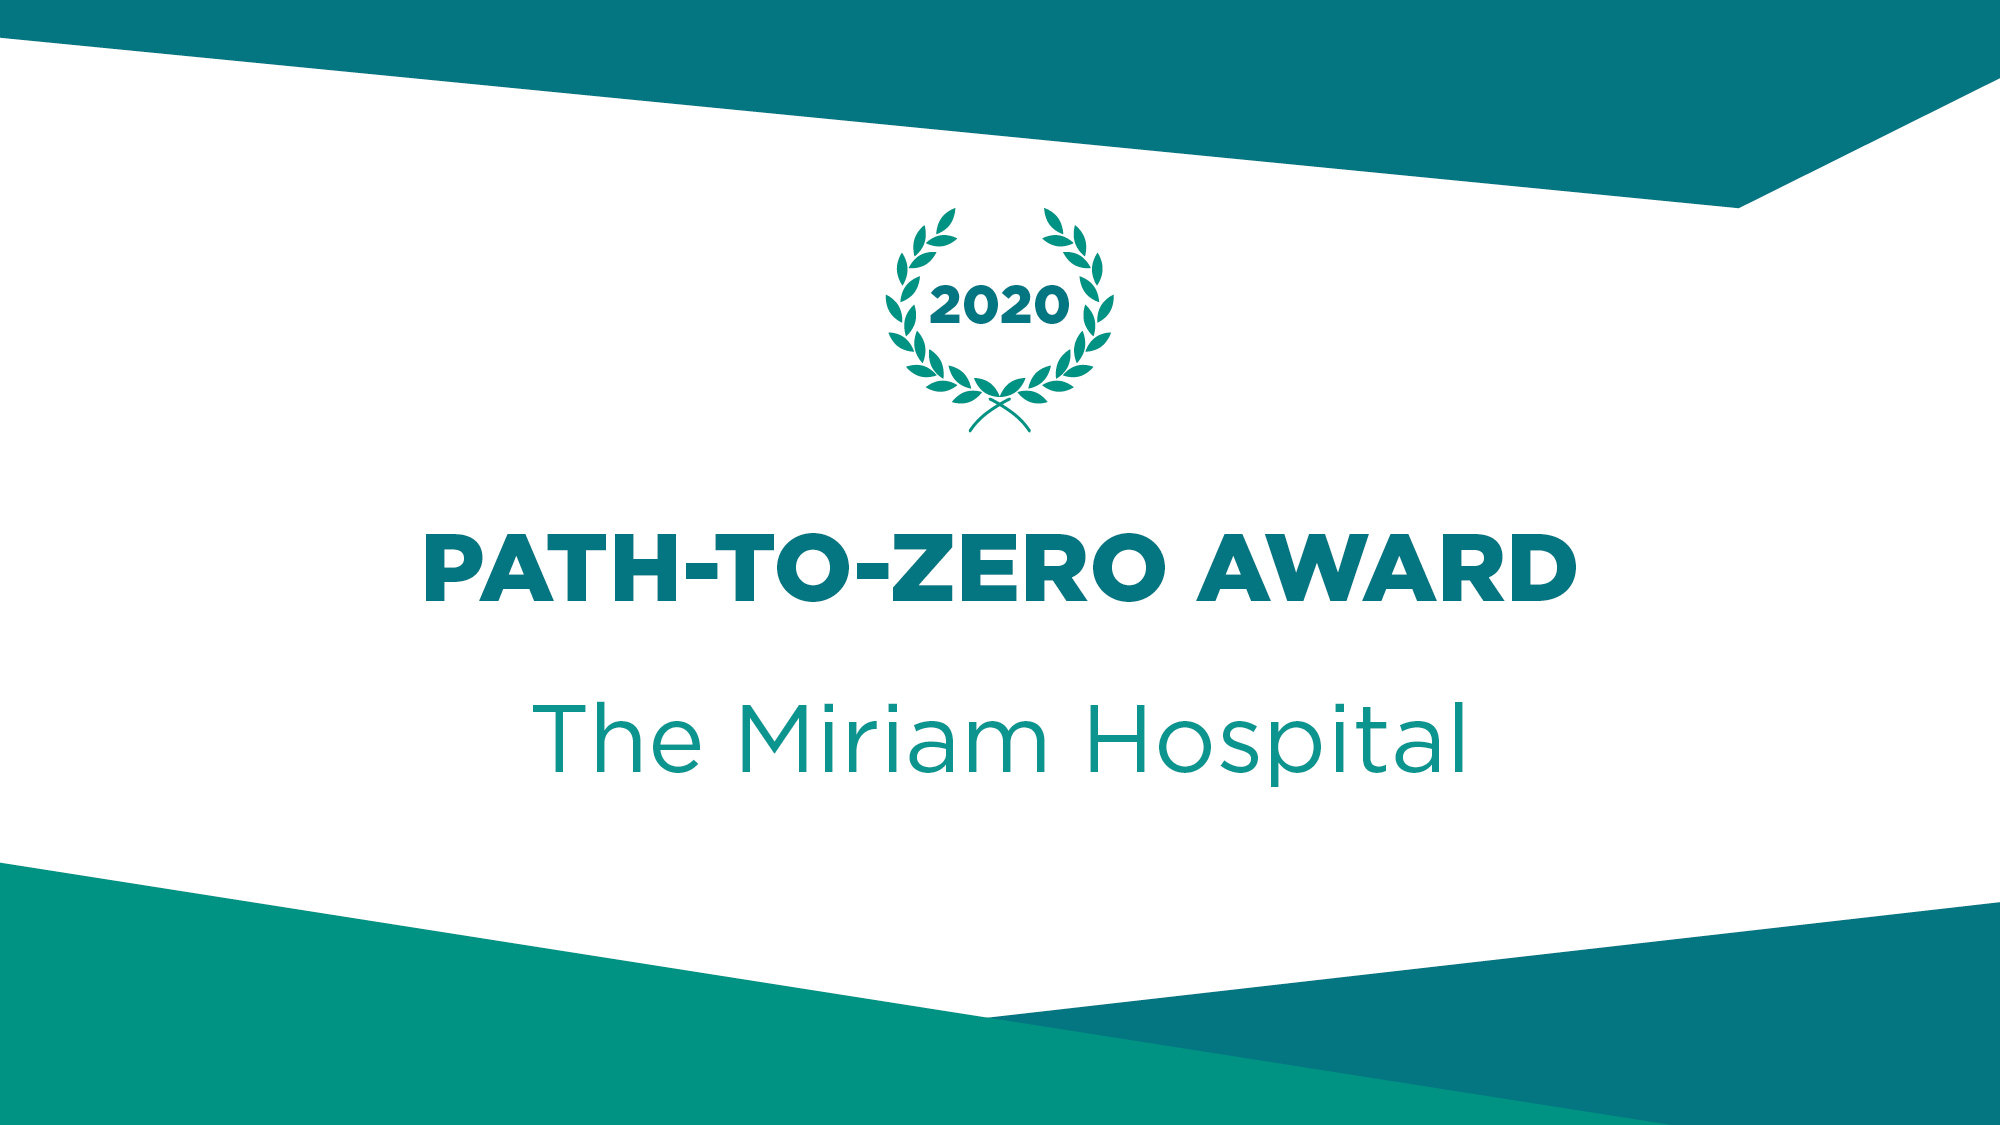 AvaSure Recognizes the Miriam Hospital for Most Impressive Fall Reduction Program